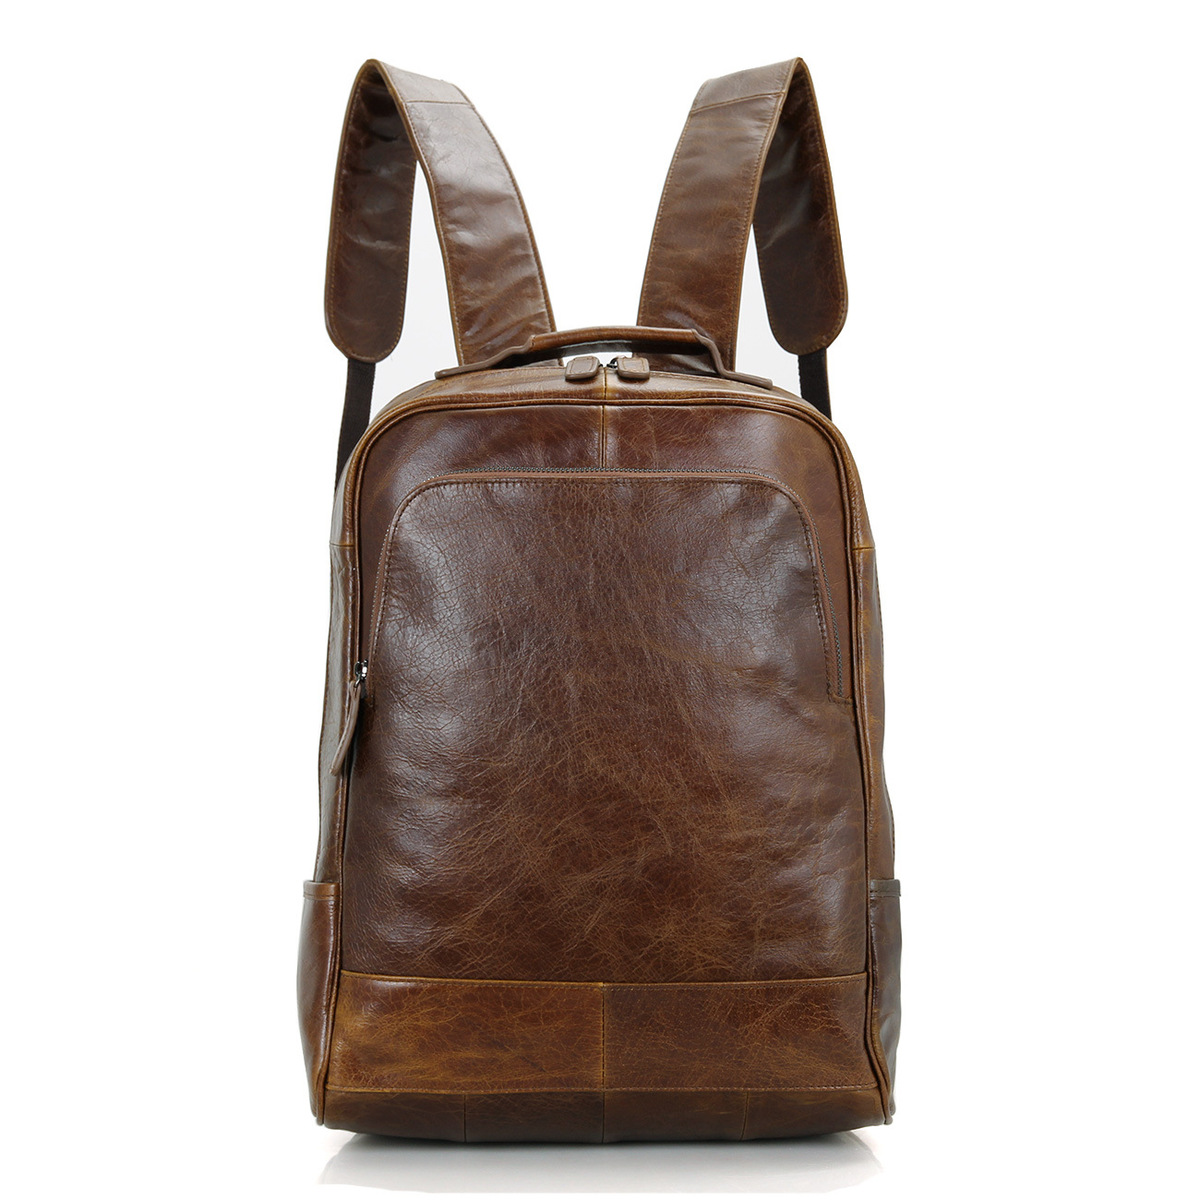 Head Layer Cowhide Backpack Shoulders A Wax Oil Leather Bag Luxury Brand Men Portfolio Marsupio Uomo Heuptas Fashion 2018 New цена